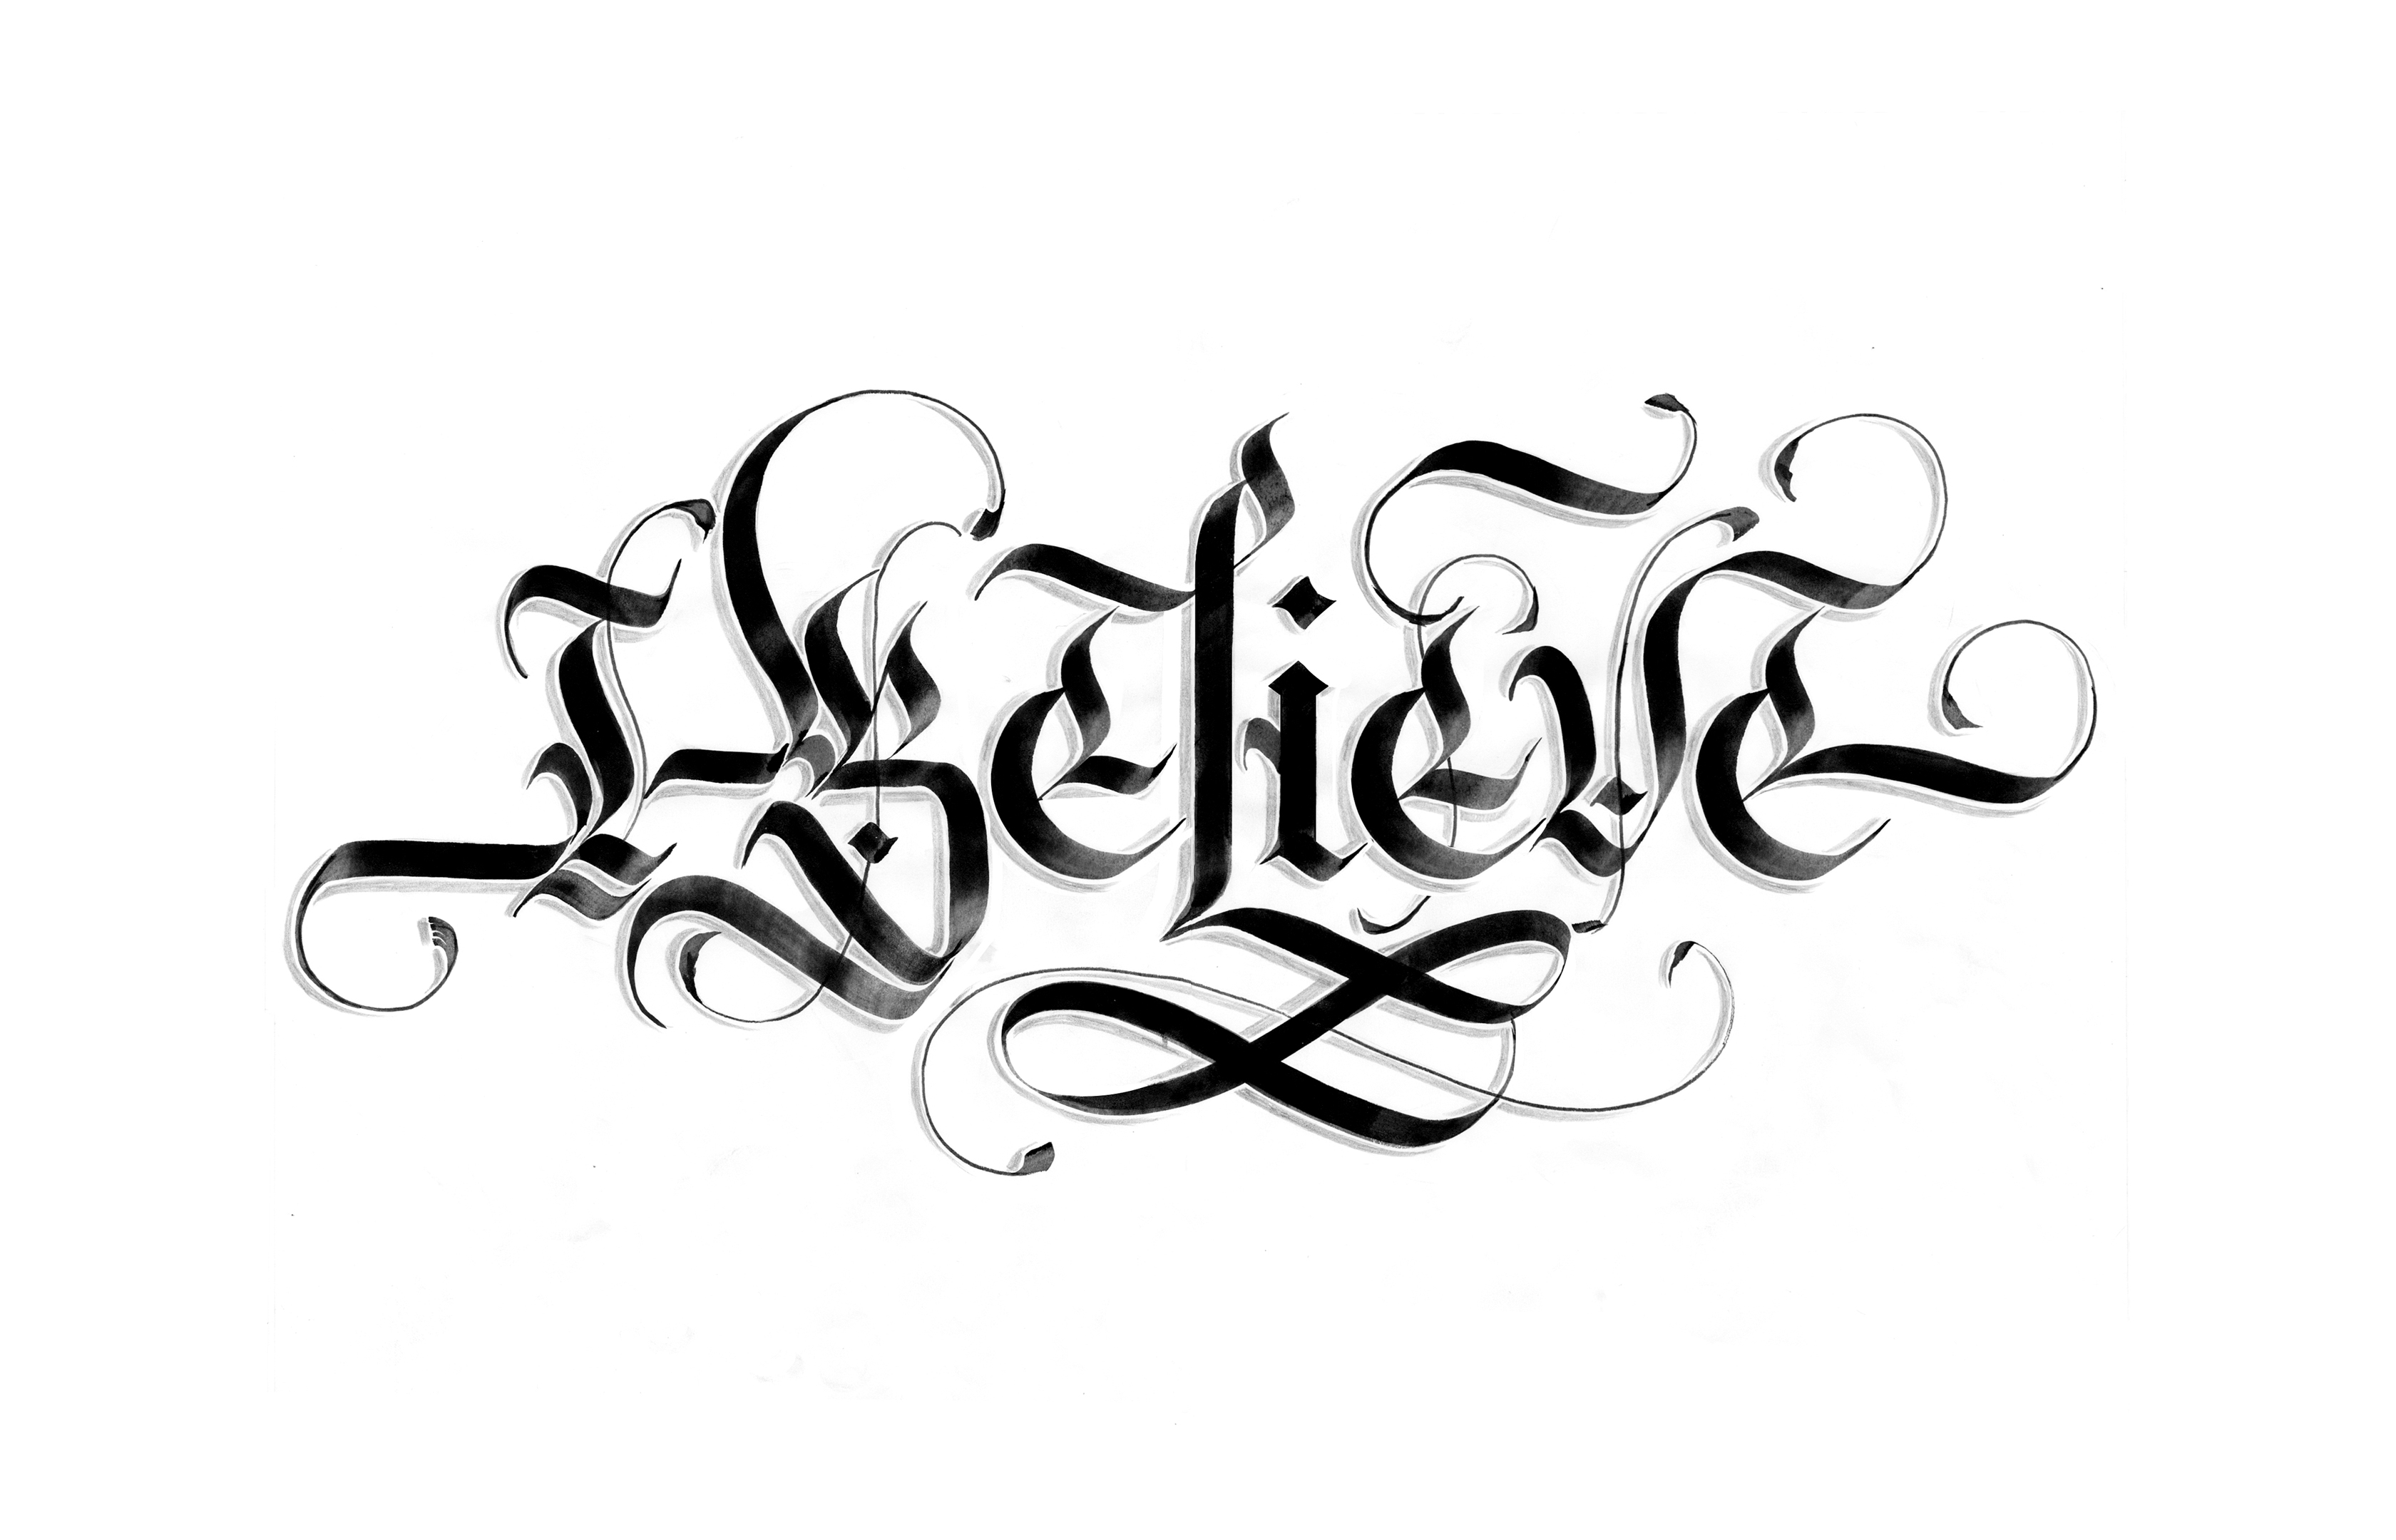 Calligraphy concept sketch